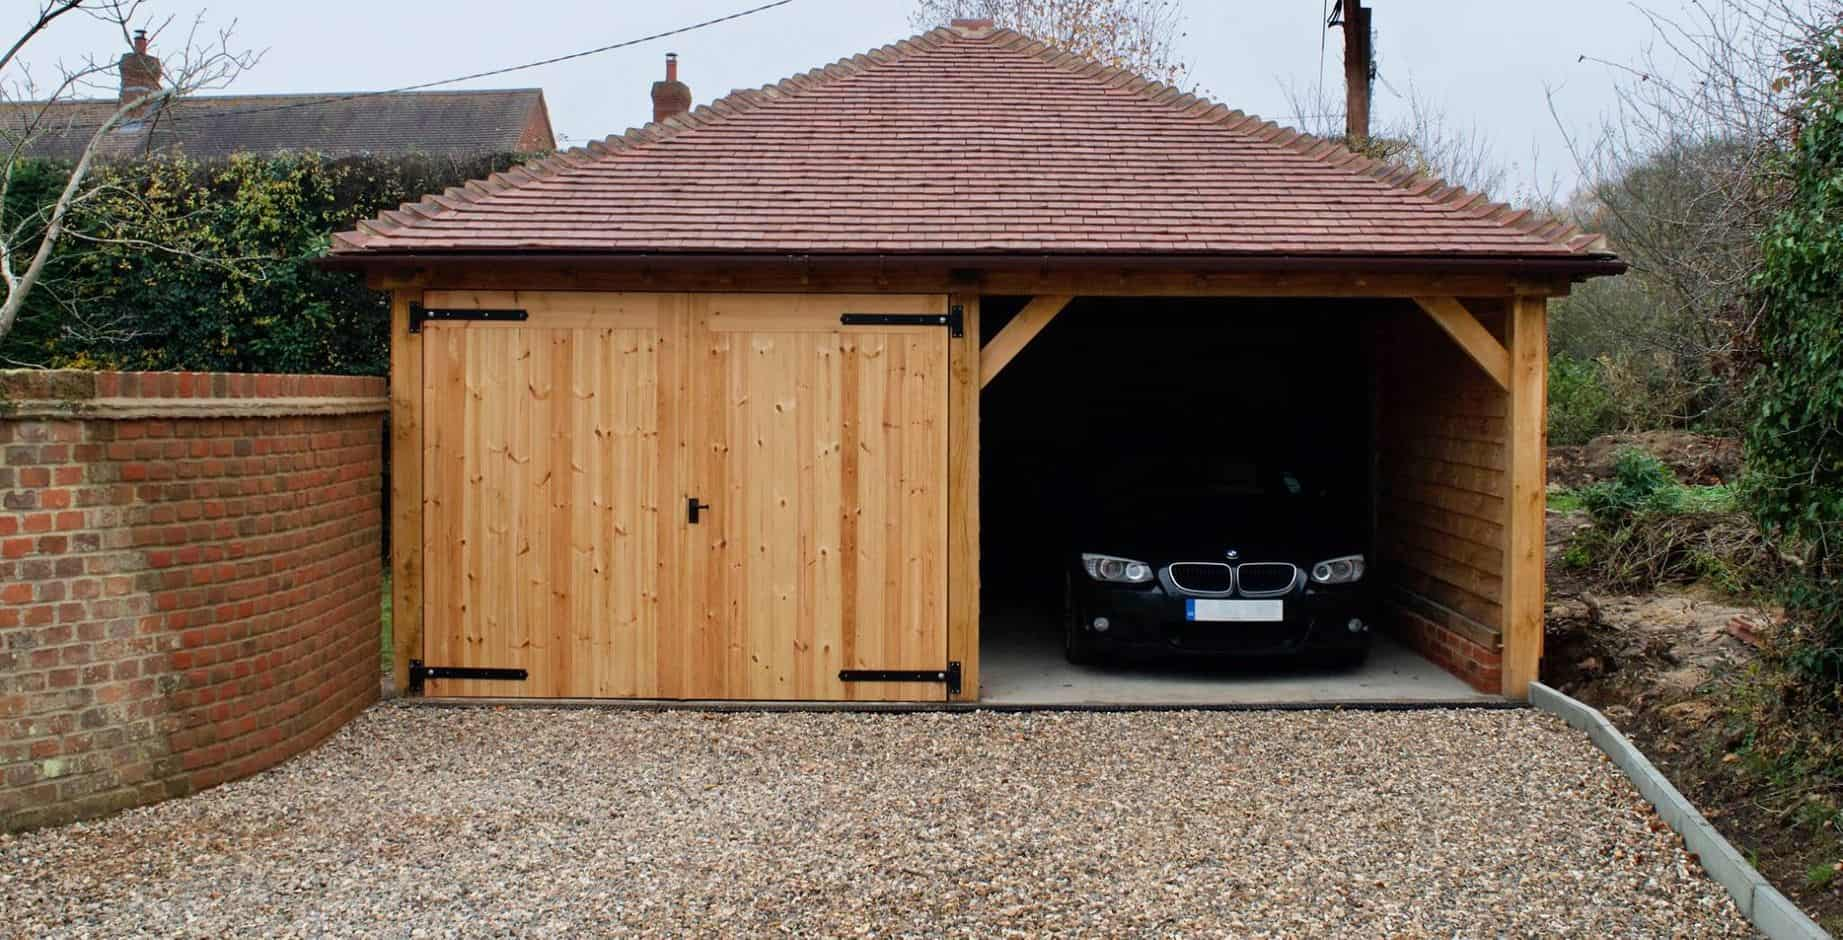 Oak Framed Garage For A Project At A Home In Oxfordshire